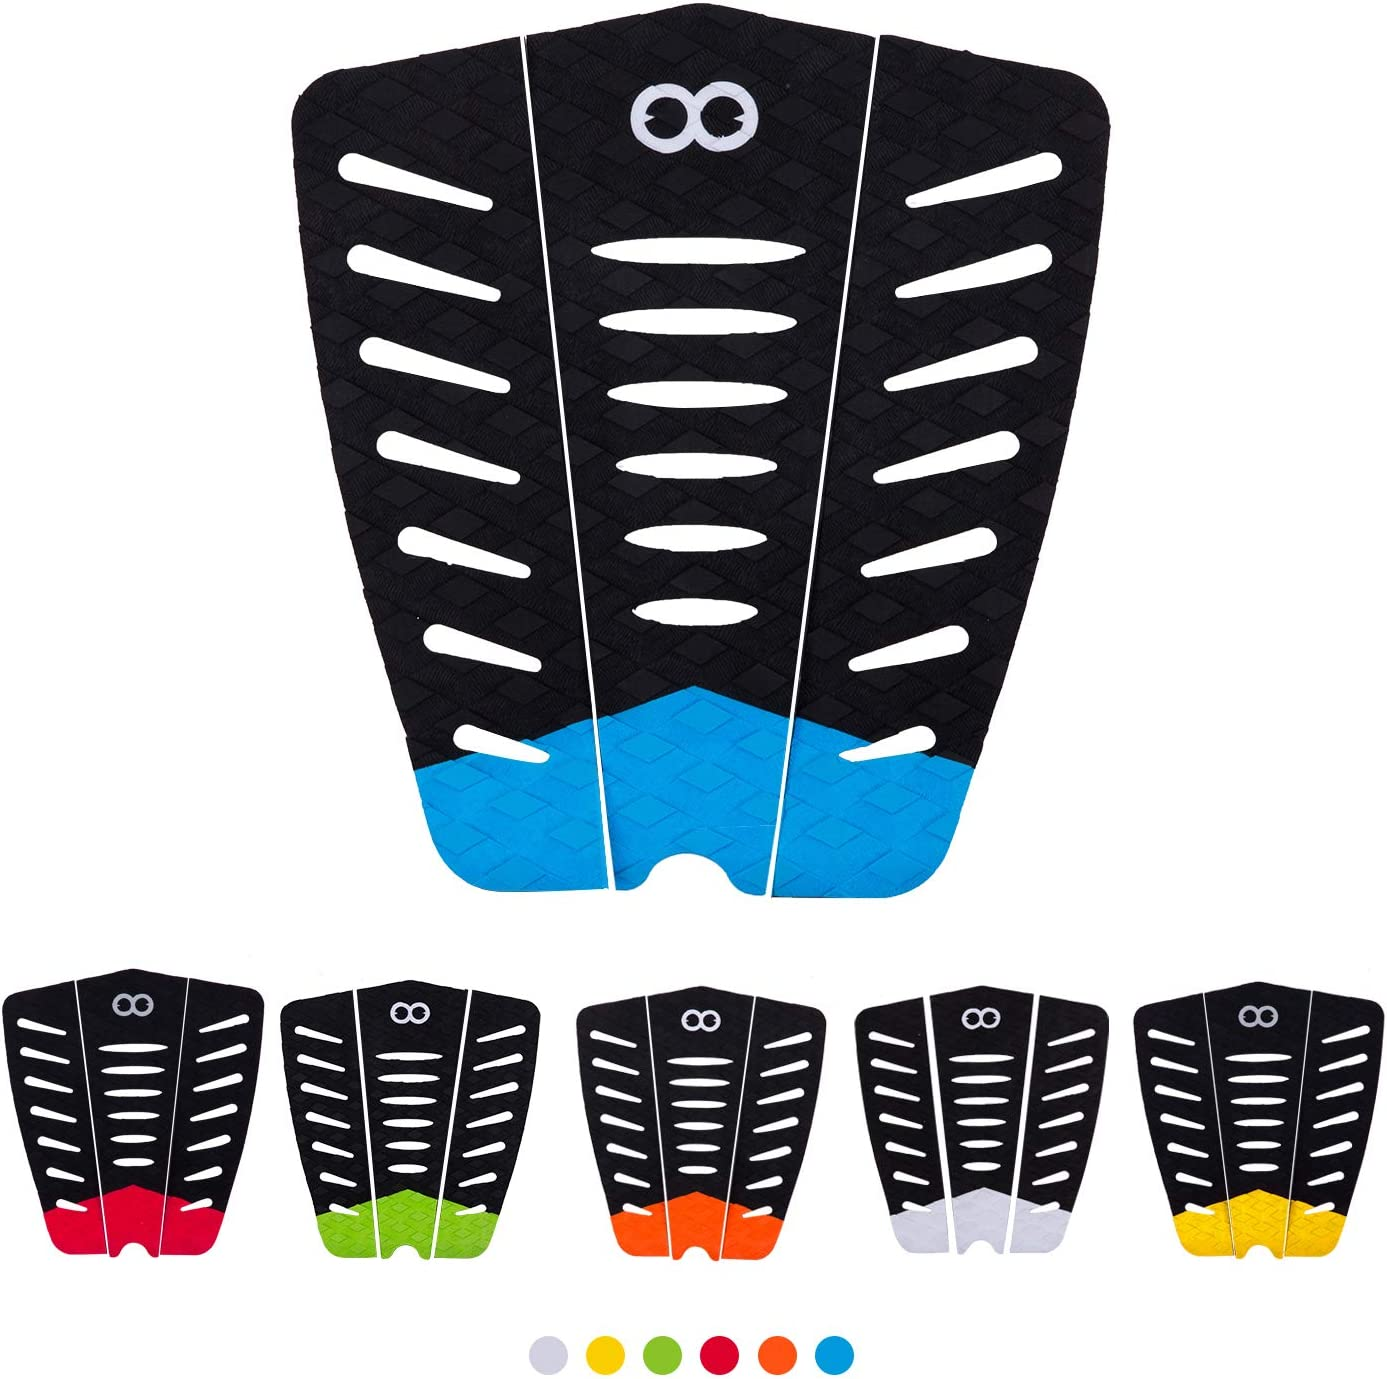 Surfboard Traction Tail Pads EVA Anti-Slip Surfboard Traction Pad with Tail Block Surf Deck Grips for Surfboards Longboards Skimboards Surfing Sports Blue 3pcs